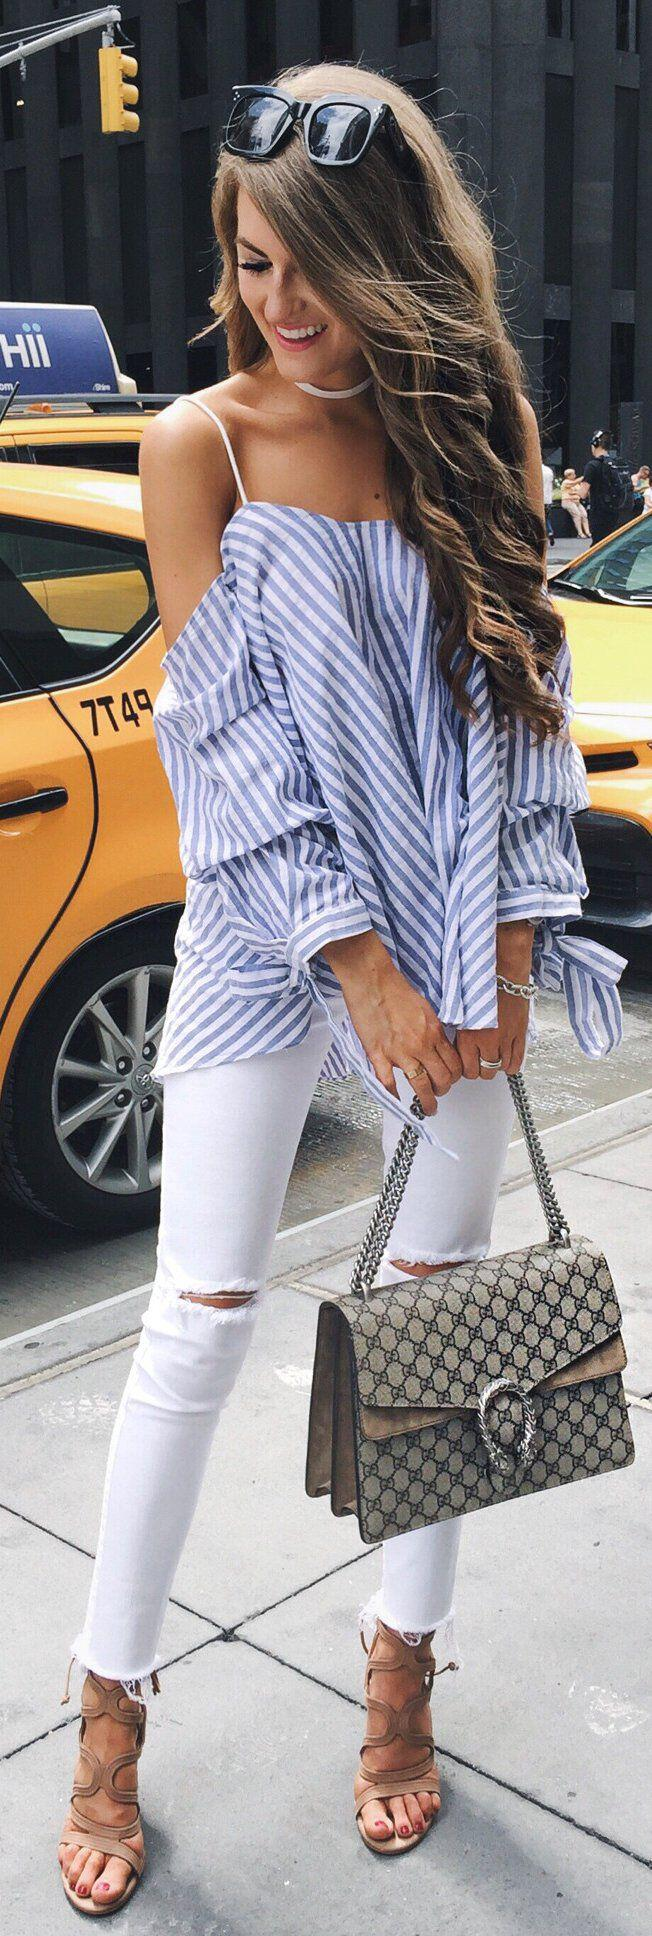 14 stylish spring outfits with white jeans 1 - 14 stylish spring outfits with white jeans